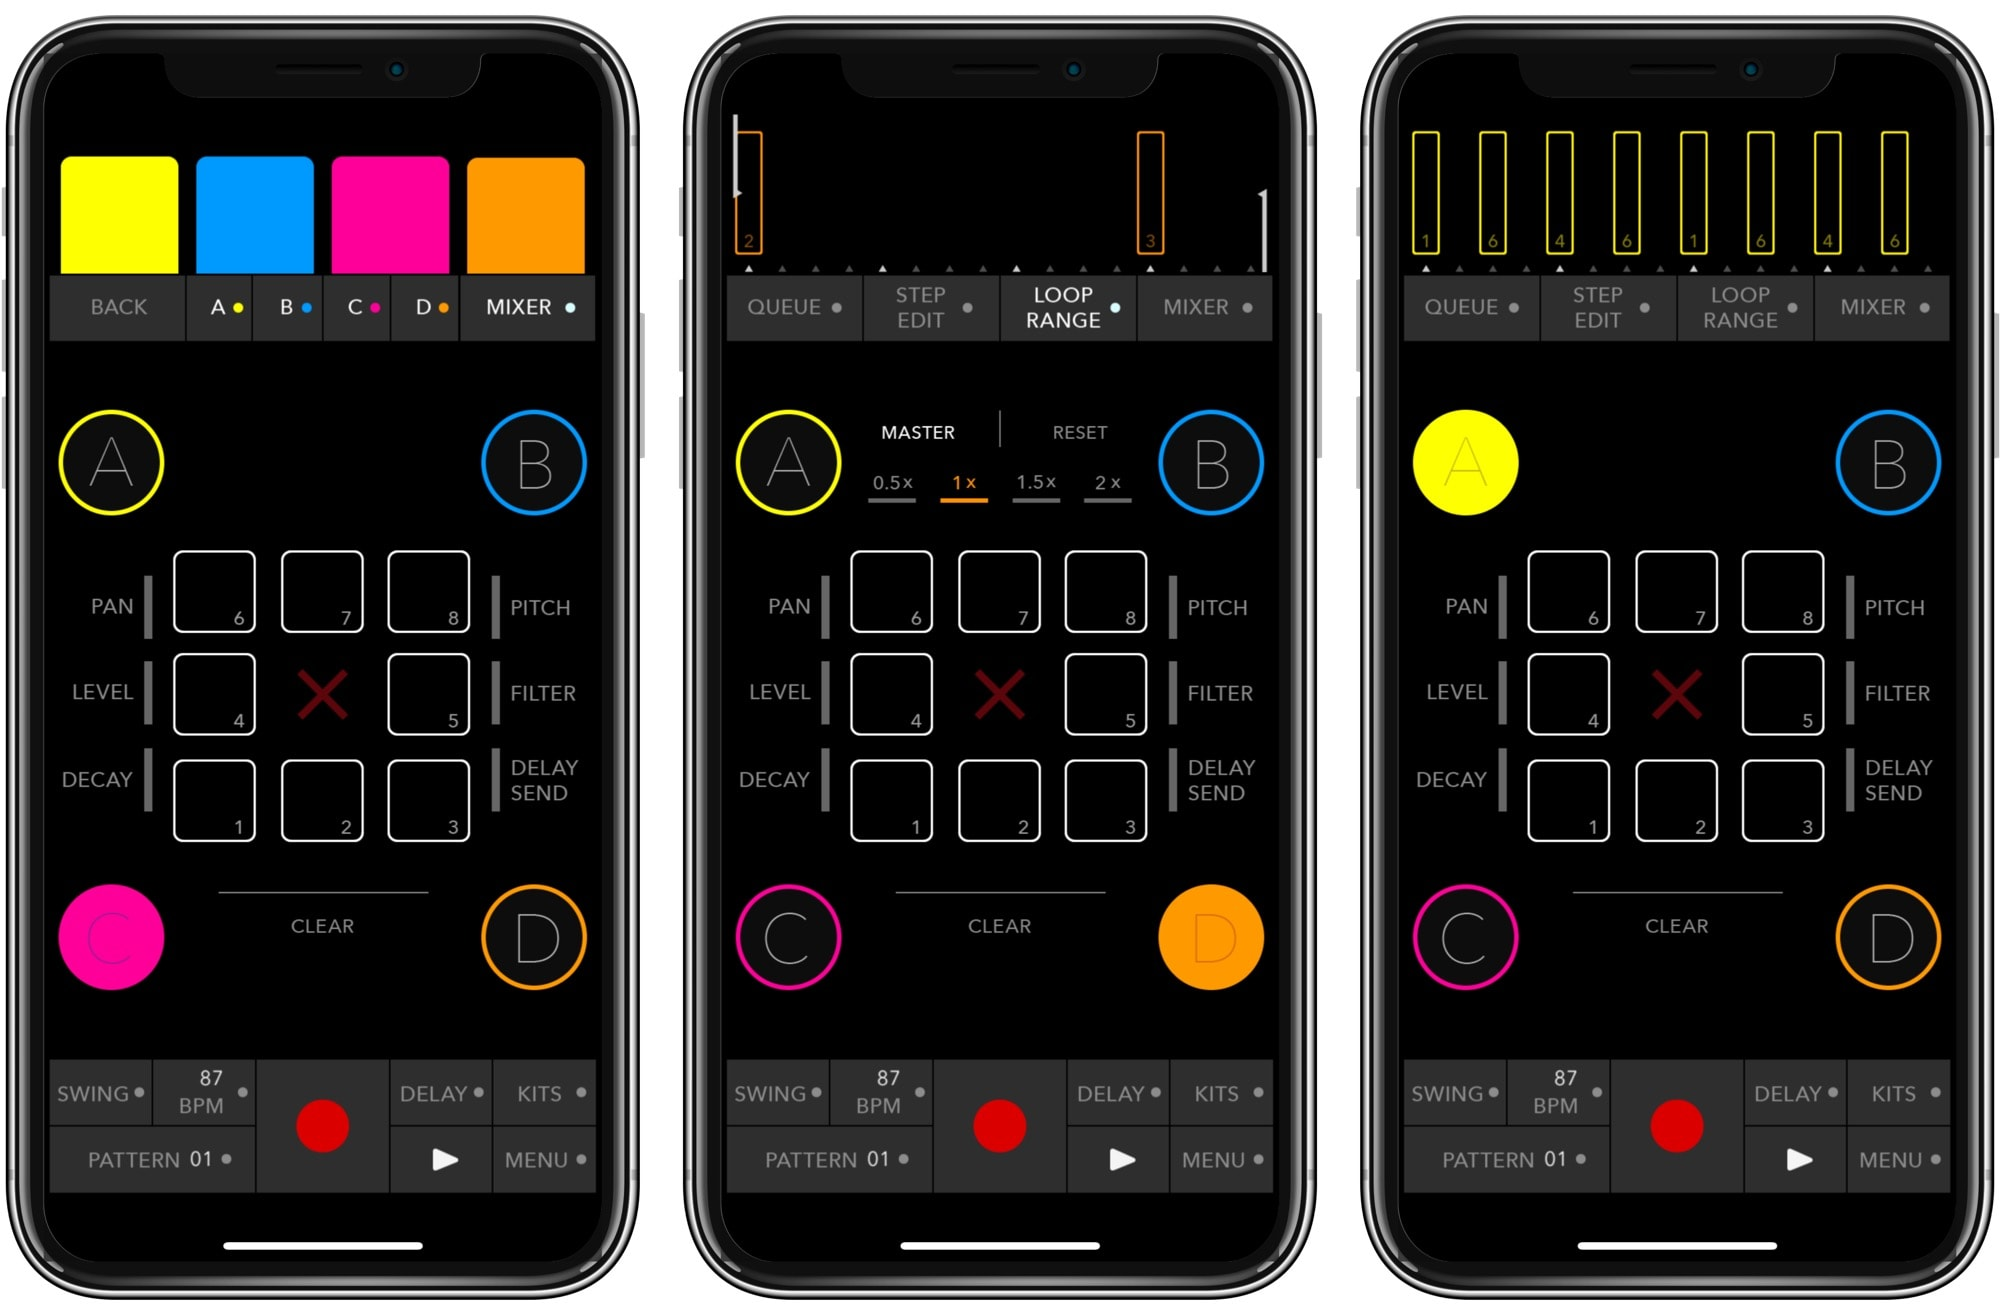 Triqtraq jam sequencer is simple yet deep.